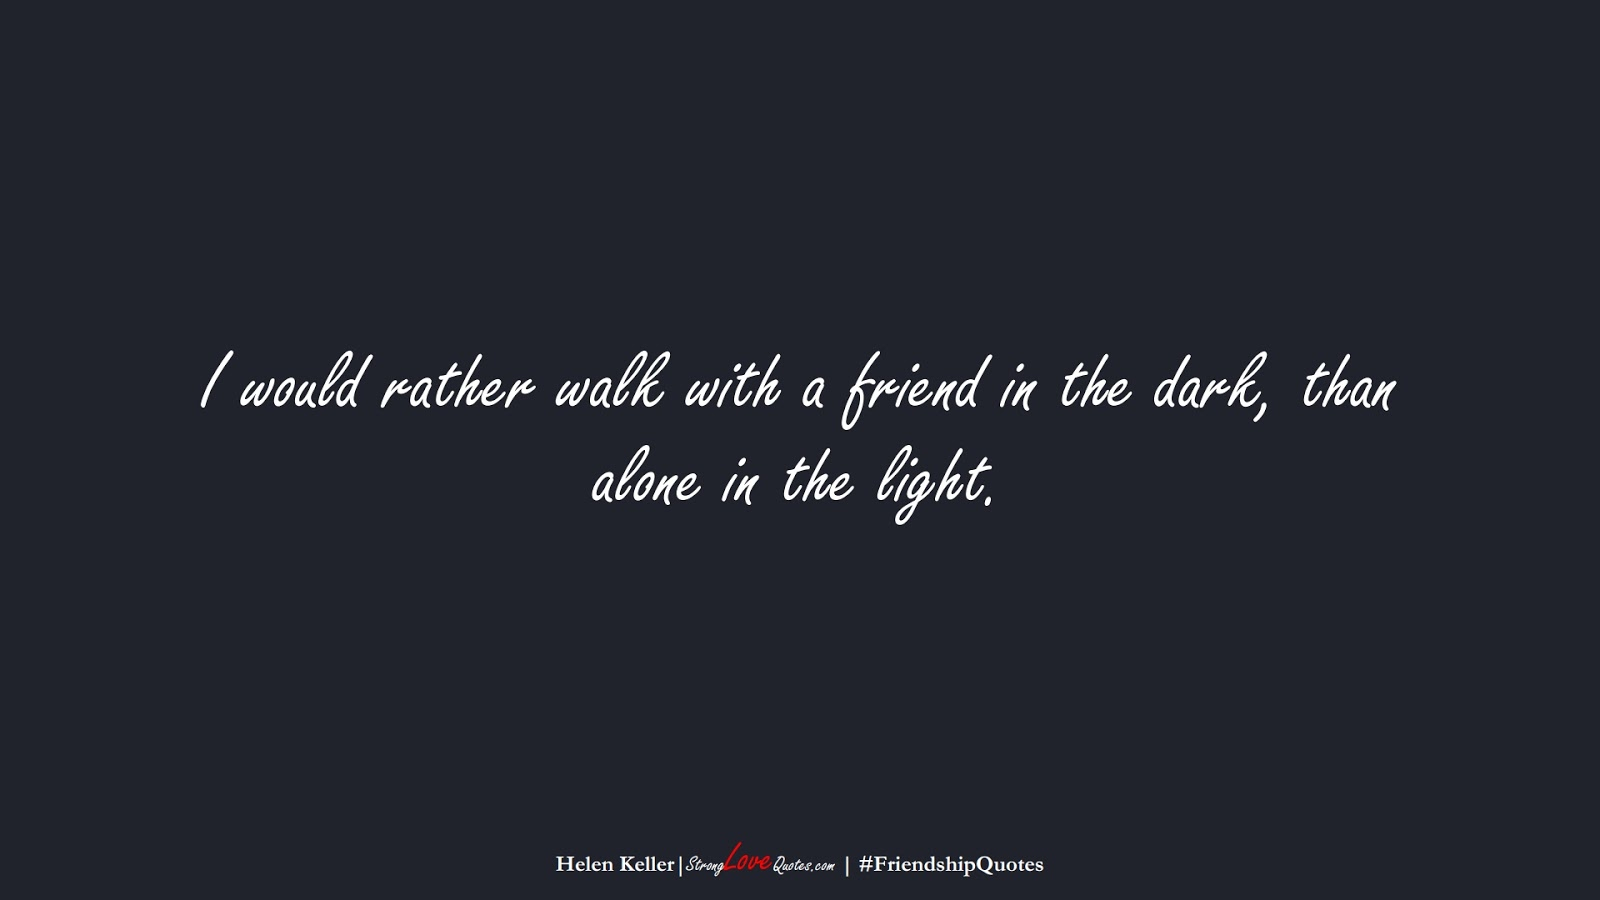 I would rather walk with a friend in the dark, than alone in the light. (Helen Keller);  #FriendshipQuotes